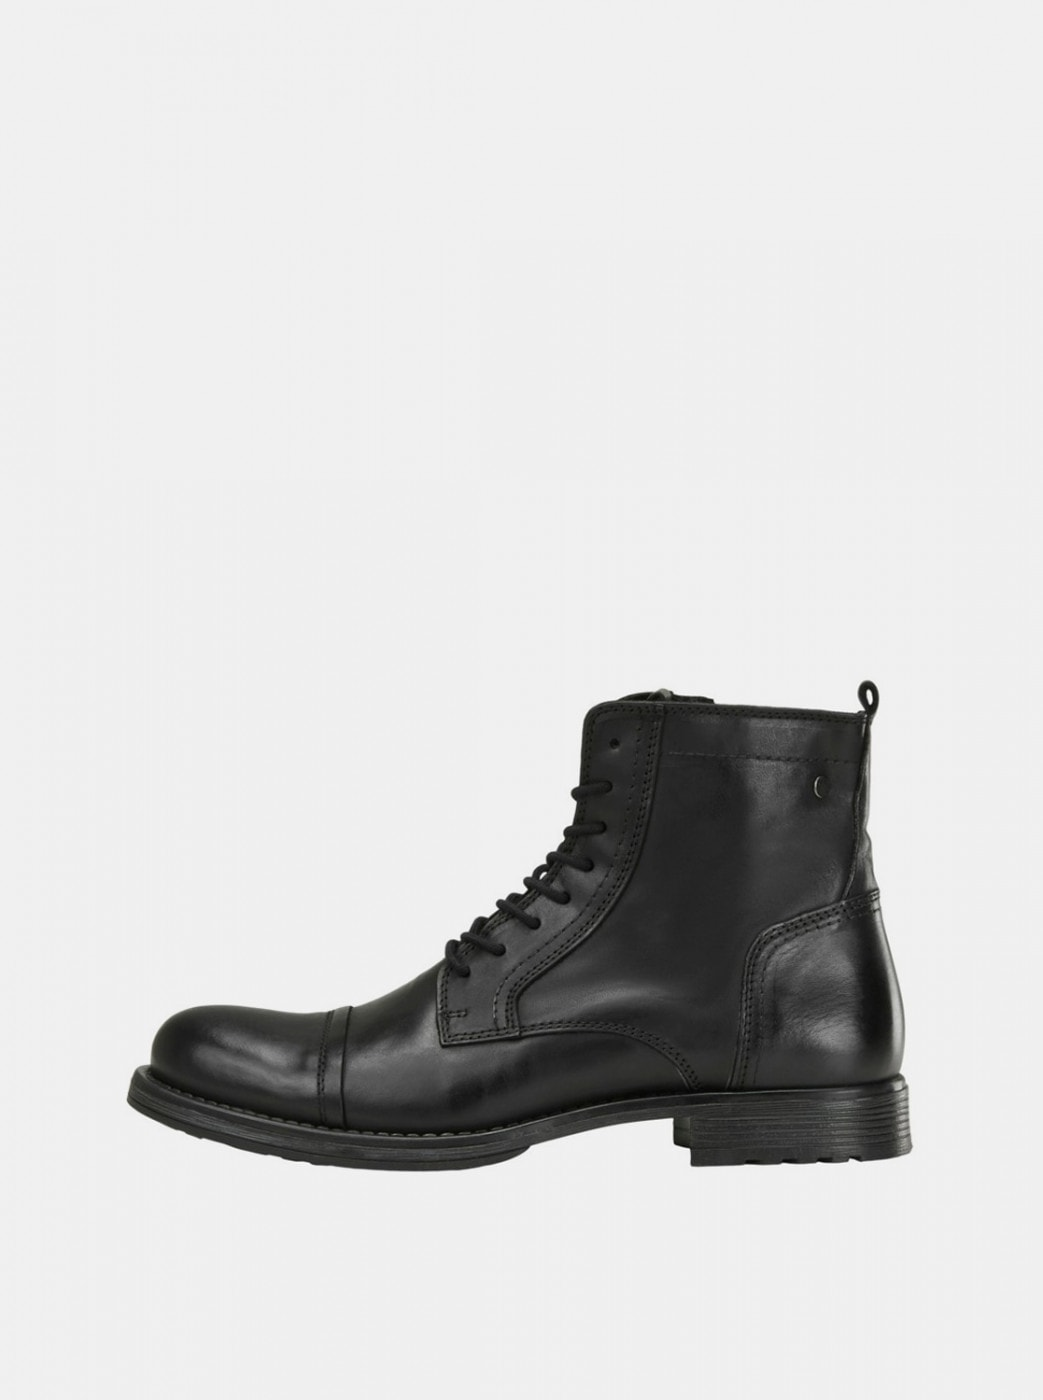 Black Men's Leather Ankle Boots Jack & Jones Russel